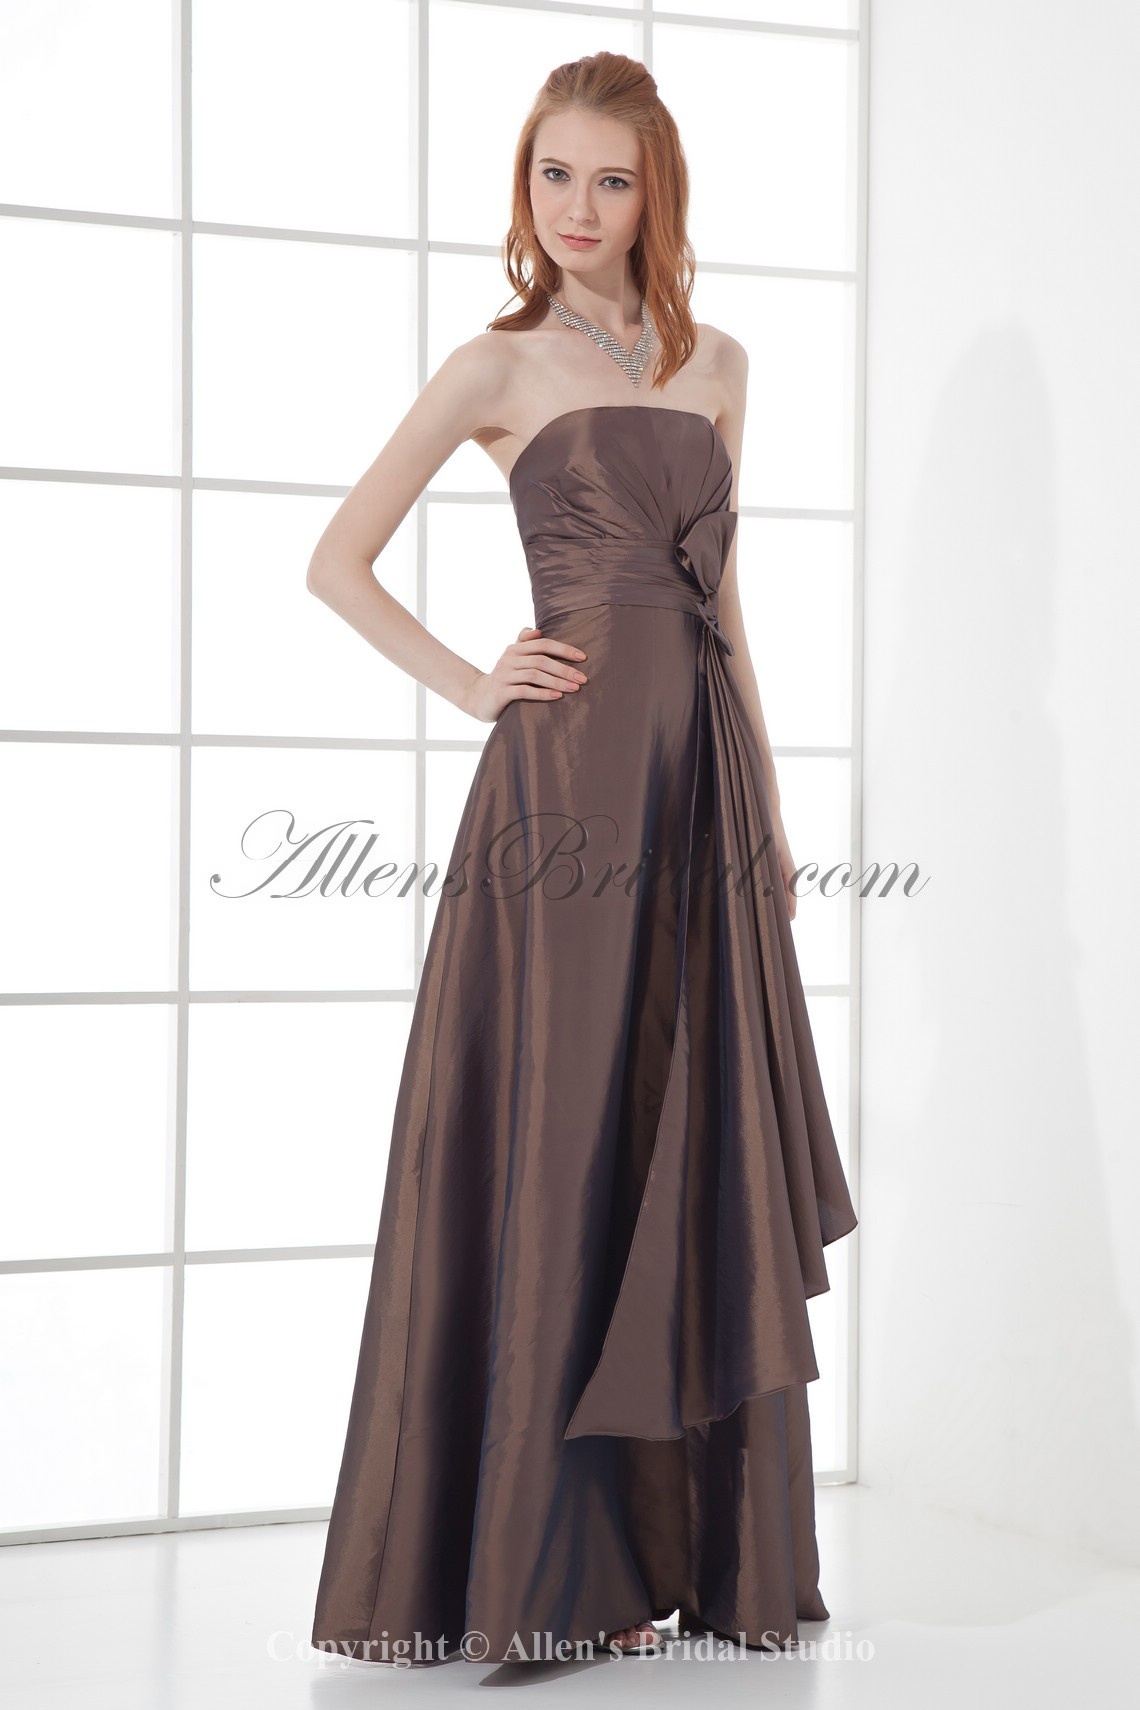 /56-443/taffeta-strapless-a-line-floor-length-ruched-prom-dress.jpg